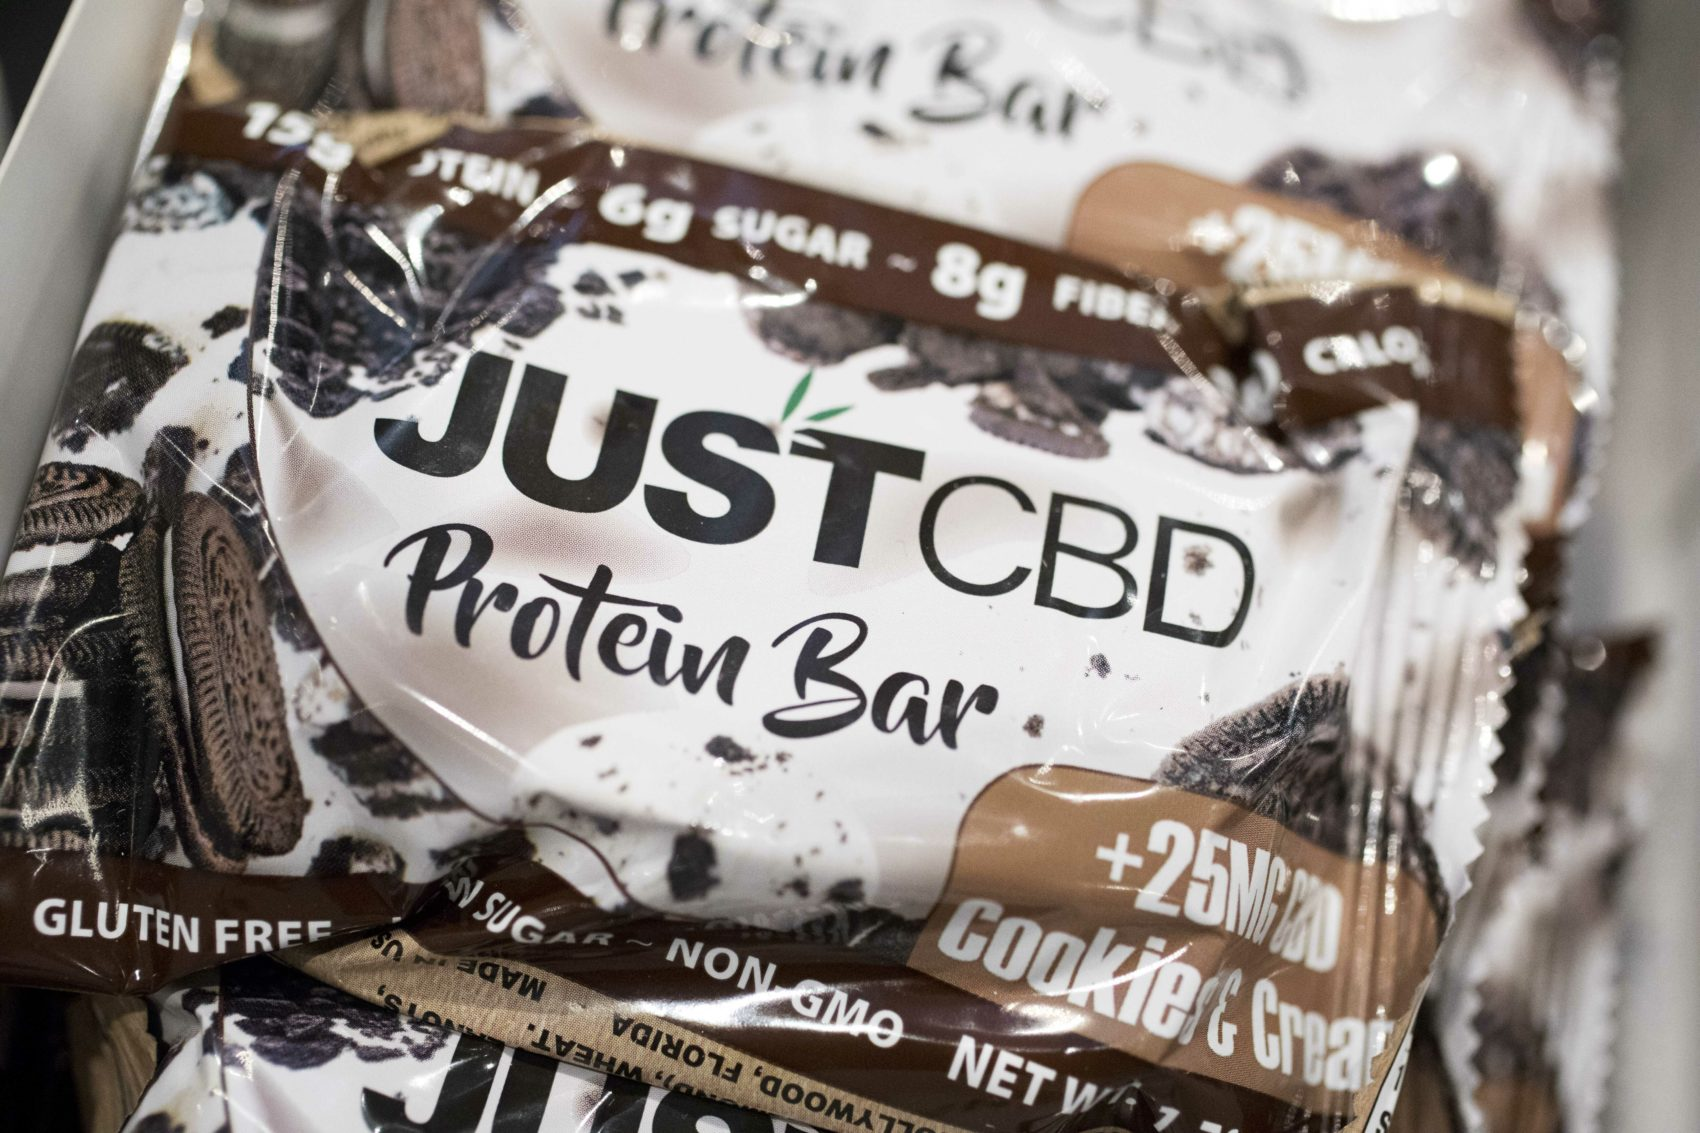 Mass  Policy Outlines Ban Of Some Hemp Products, Including